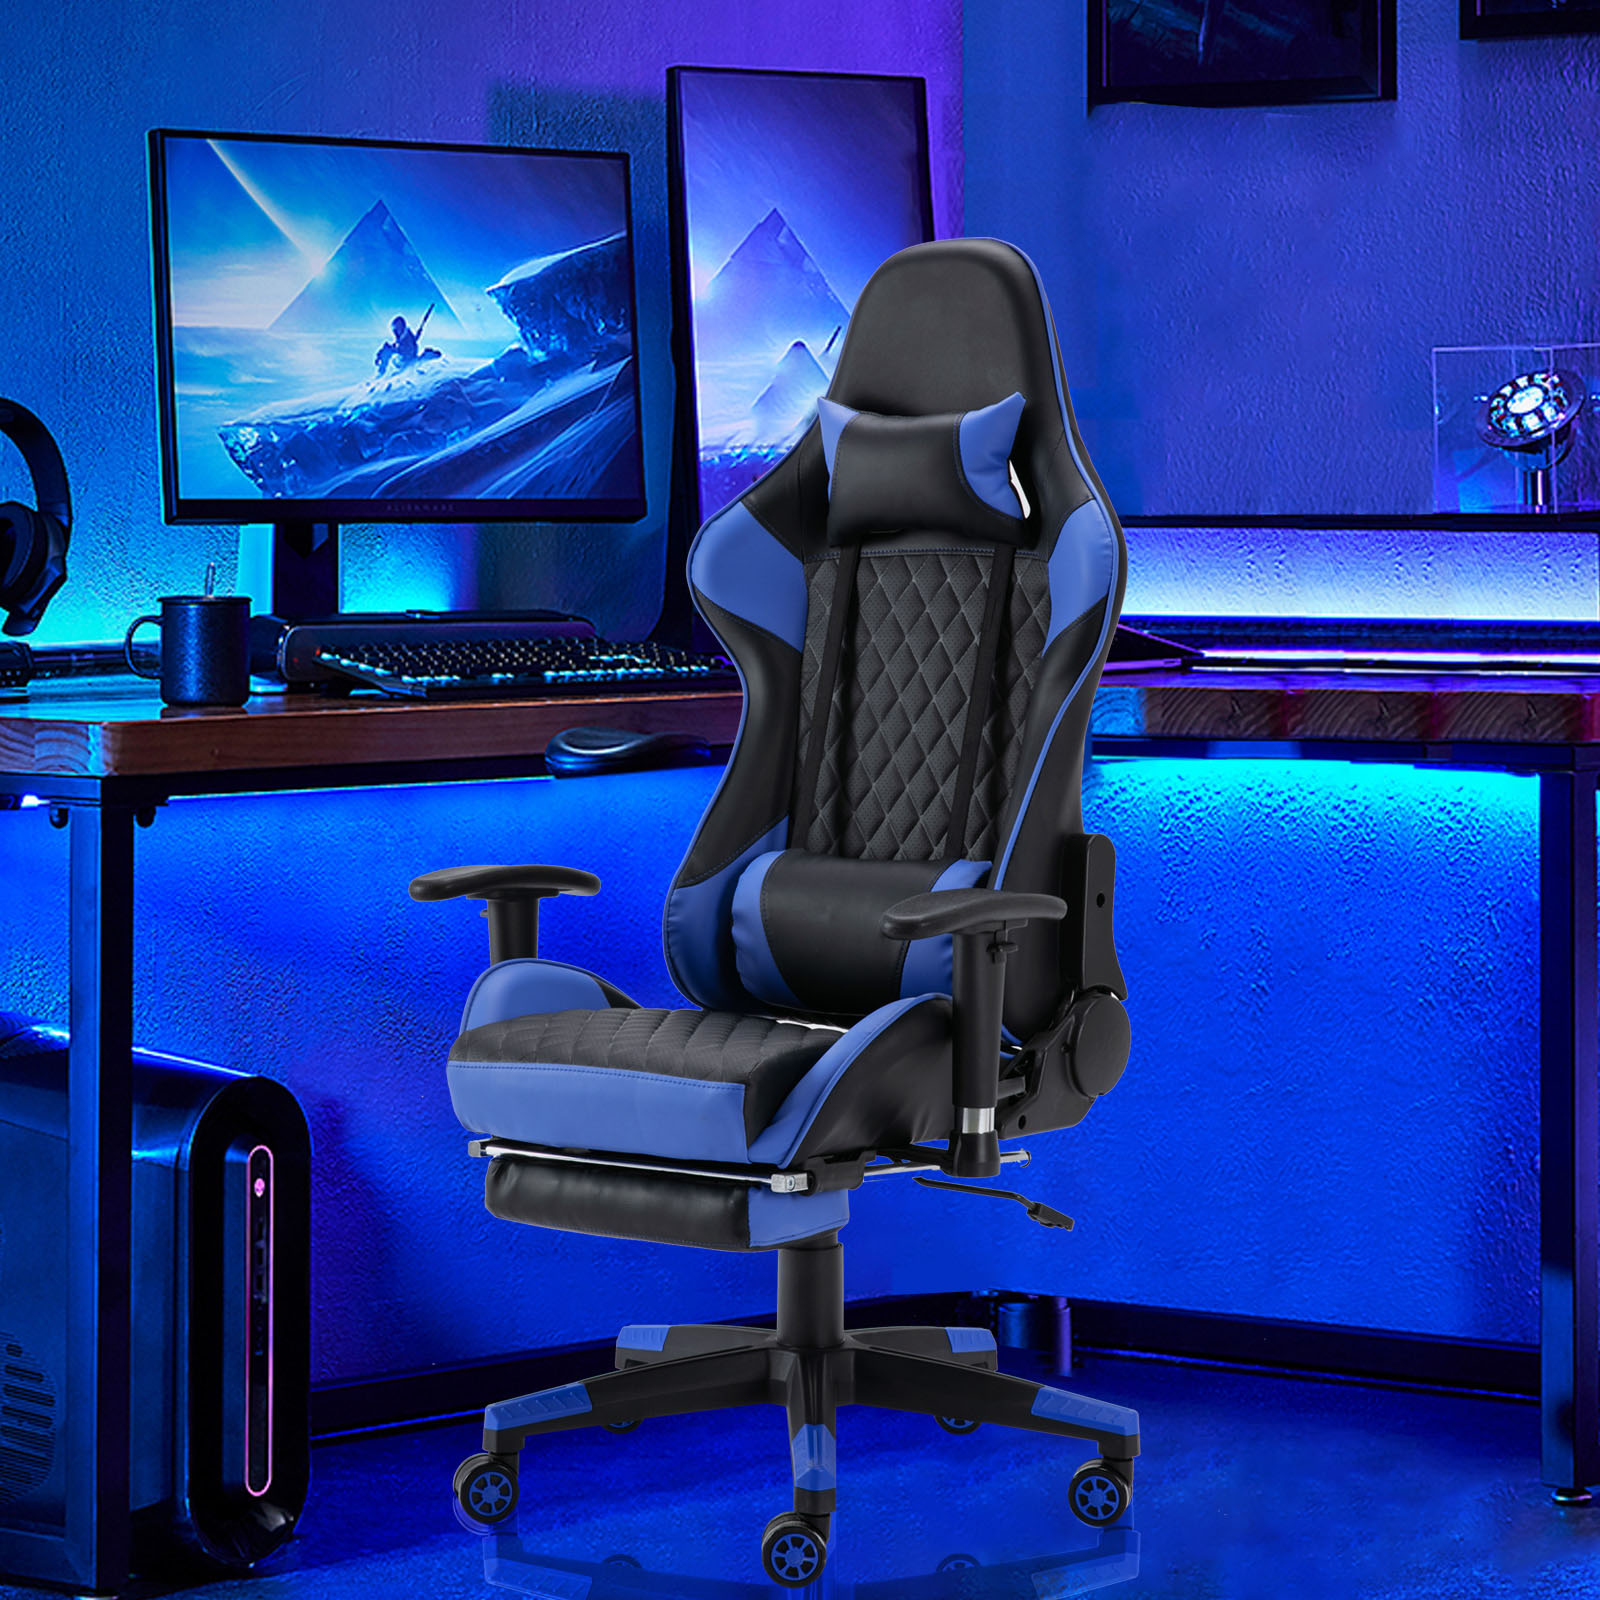 H79fb2214839641aeba1f410084605f1cC - Gaming Chair Computer Armchair Adjustable Armrest And Footrest PVC Household Office Chair Ergonomic Computer Gamer Chair